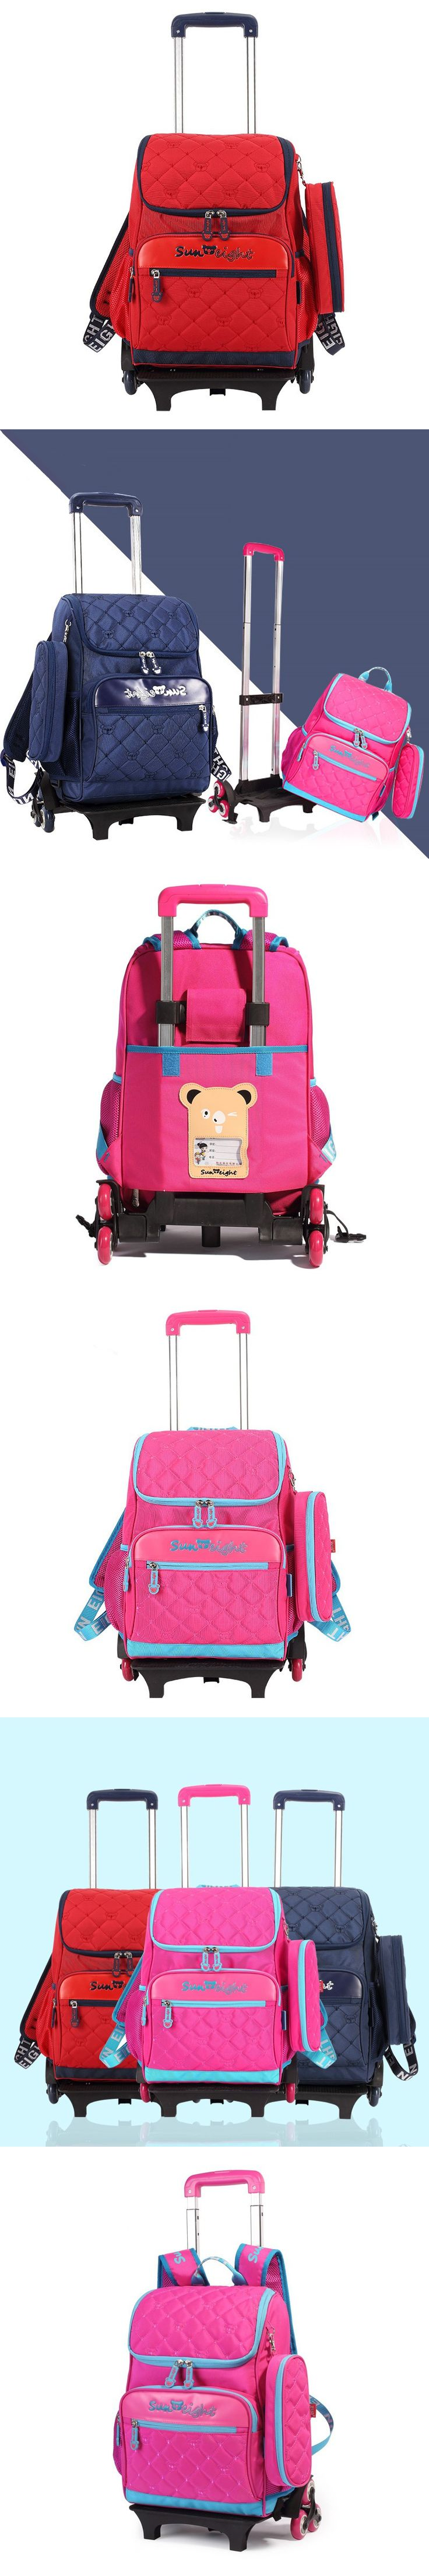 Red plaid wheeled school bag for girls backpack child trolly bag with wheels kids back pack mochila boys school bags pen case